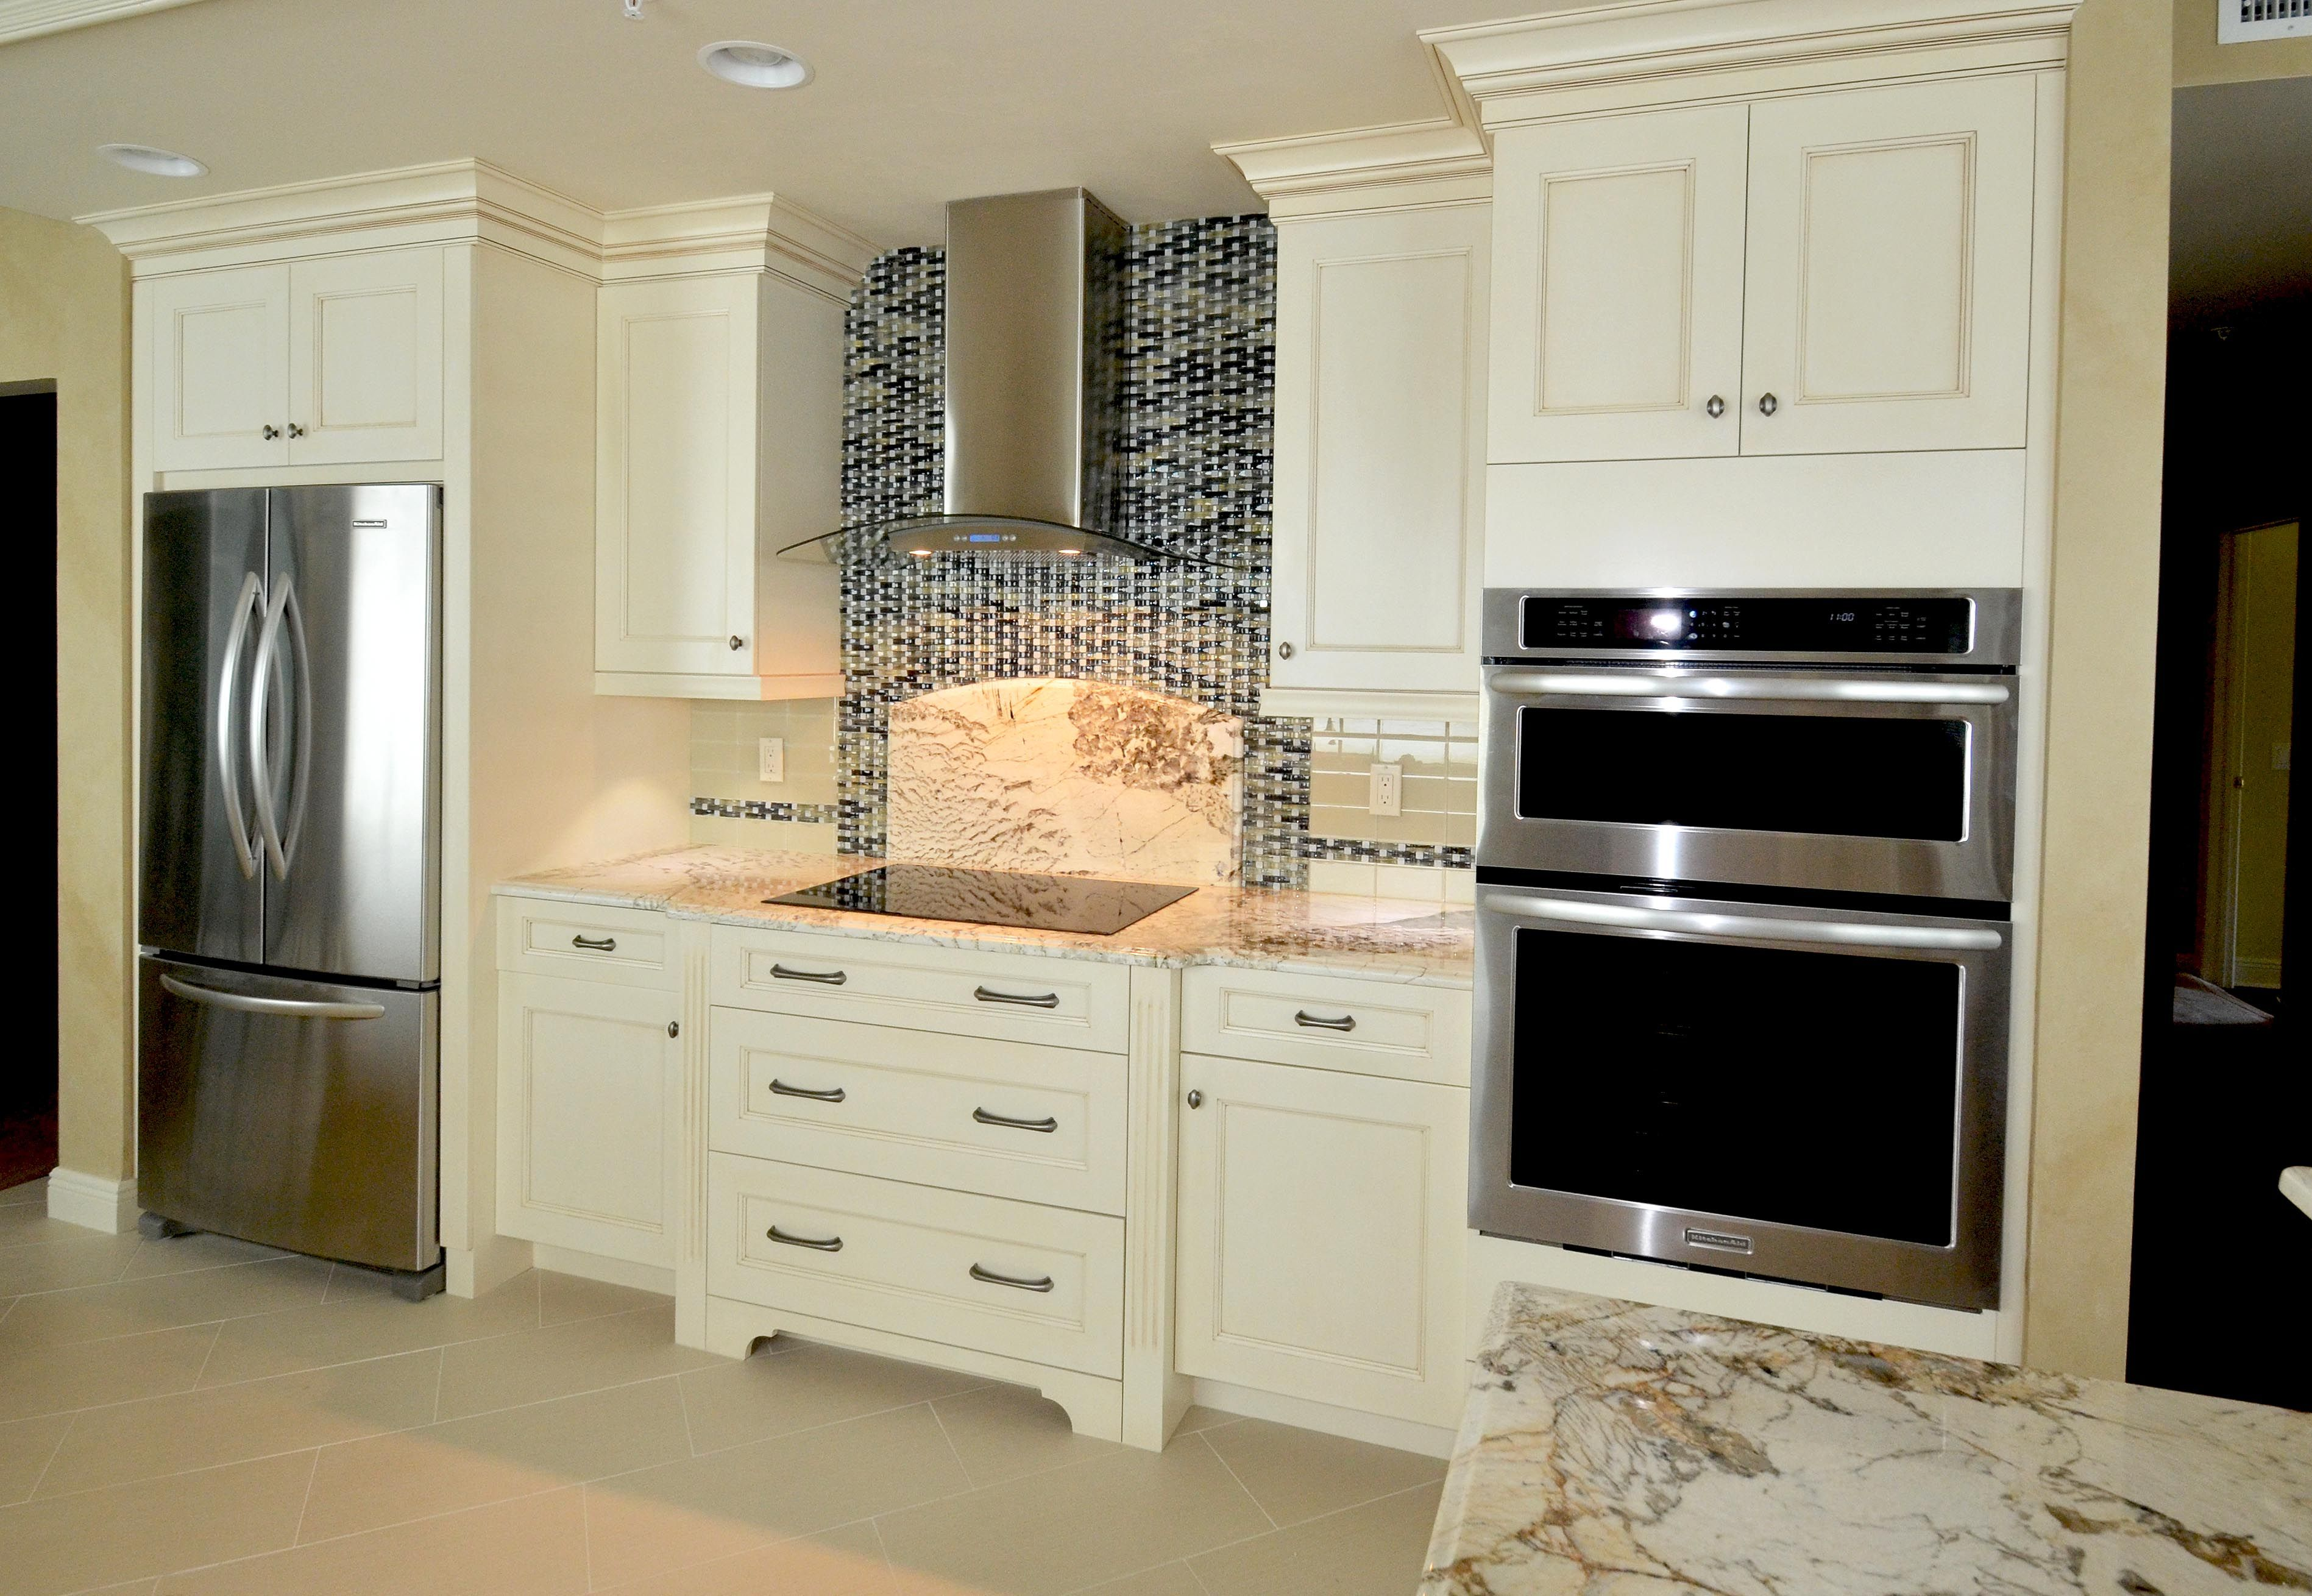 Outdoor kitchen in Naples, FL by Da Vinci Cabinetry | Our Project ...